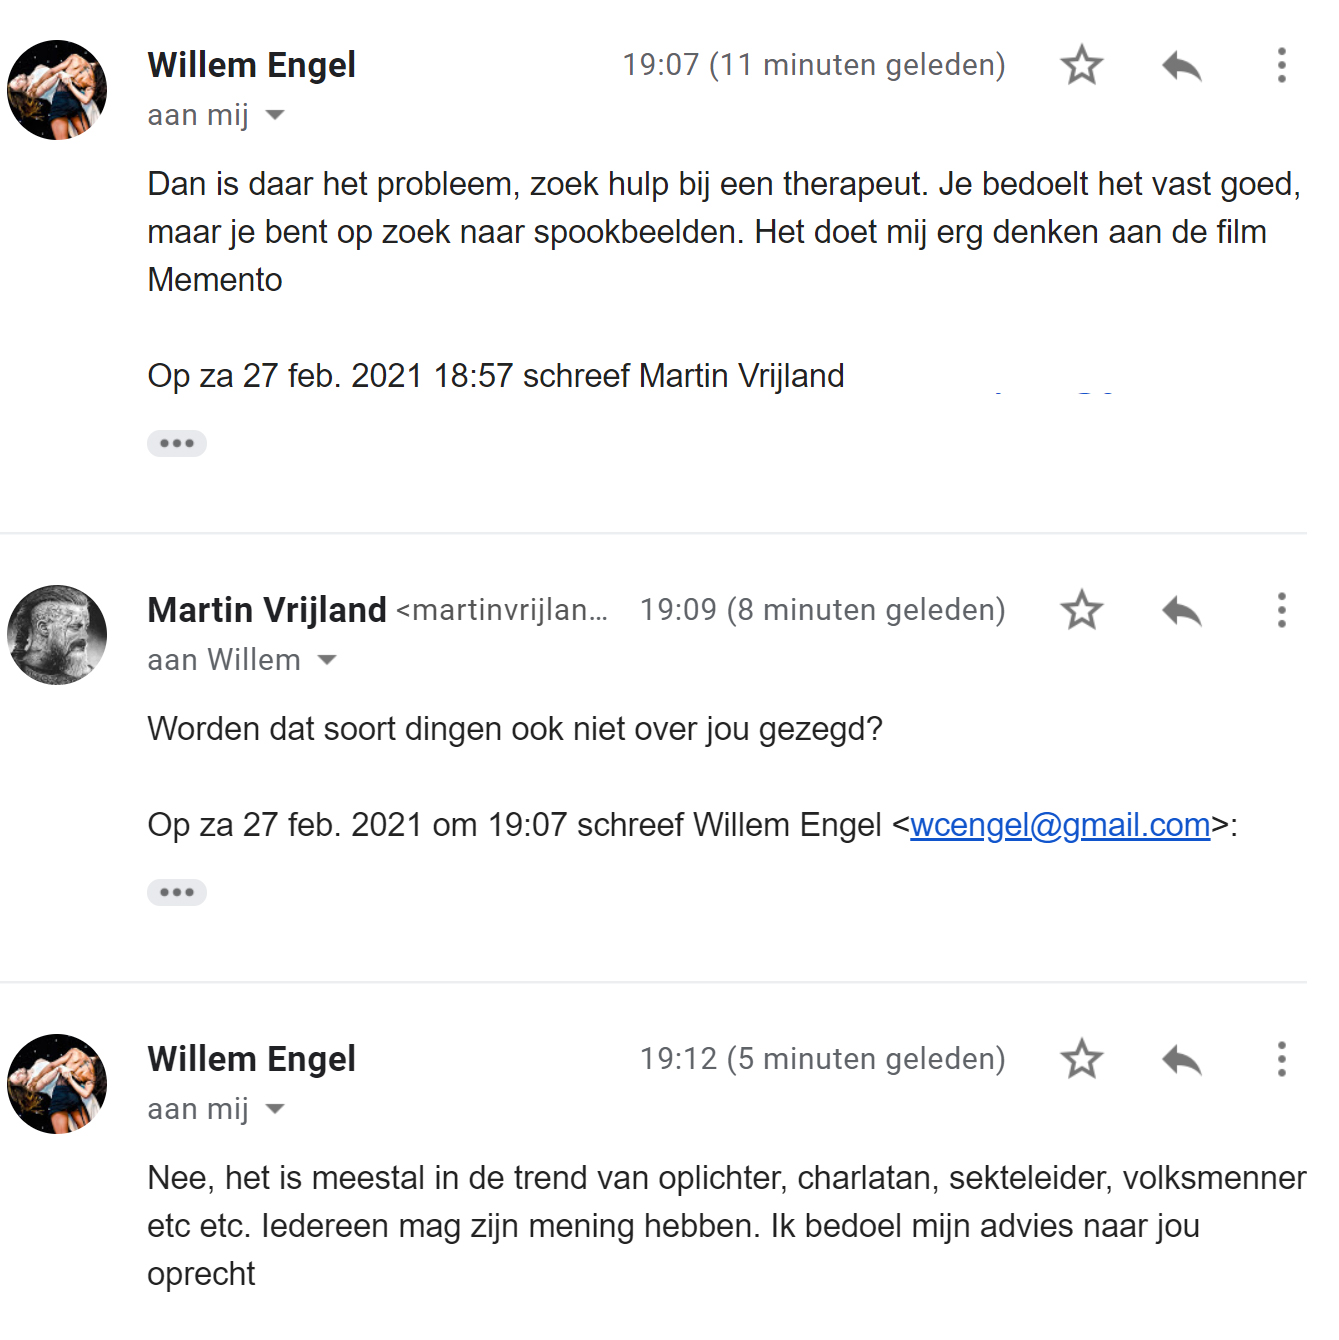 https://www.martinvrijland.nl/wp-content/uploads/2021/02/Willem-Engel-email-3.jpg